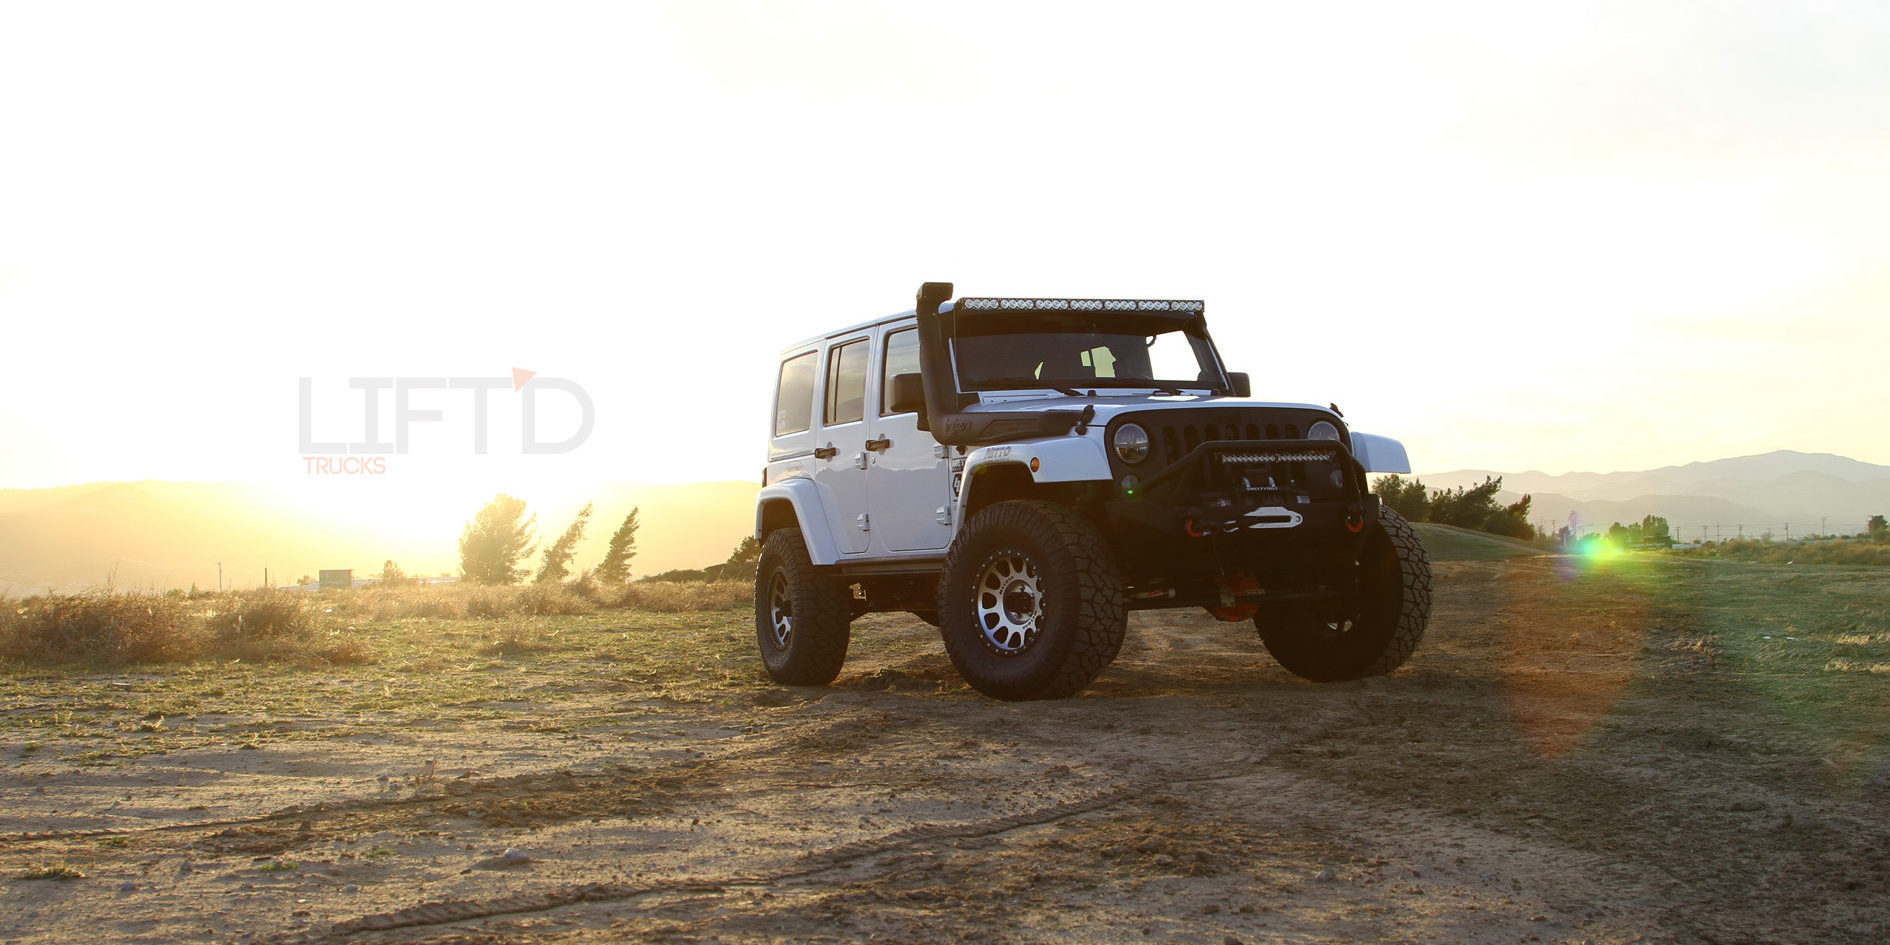 LIFTD-InjenJeep-11